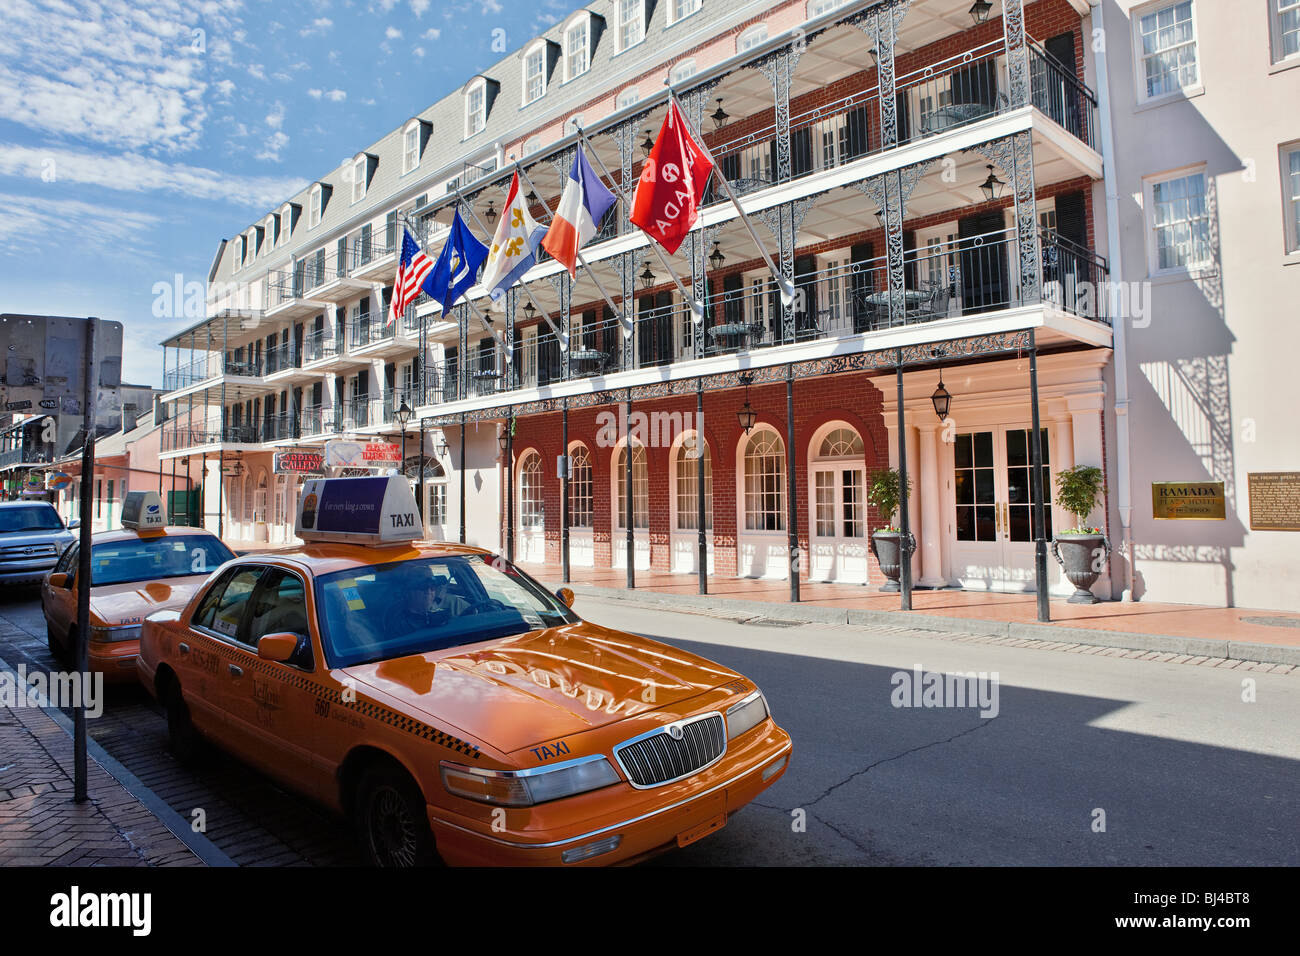 Taxi Cabs In Front Of The Inn On Bourbon Hotel Bourbon Street Stock